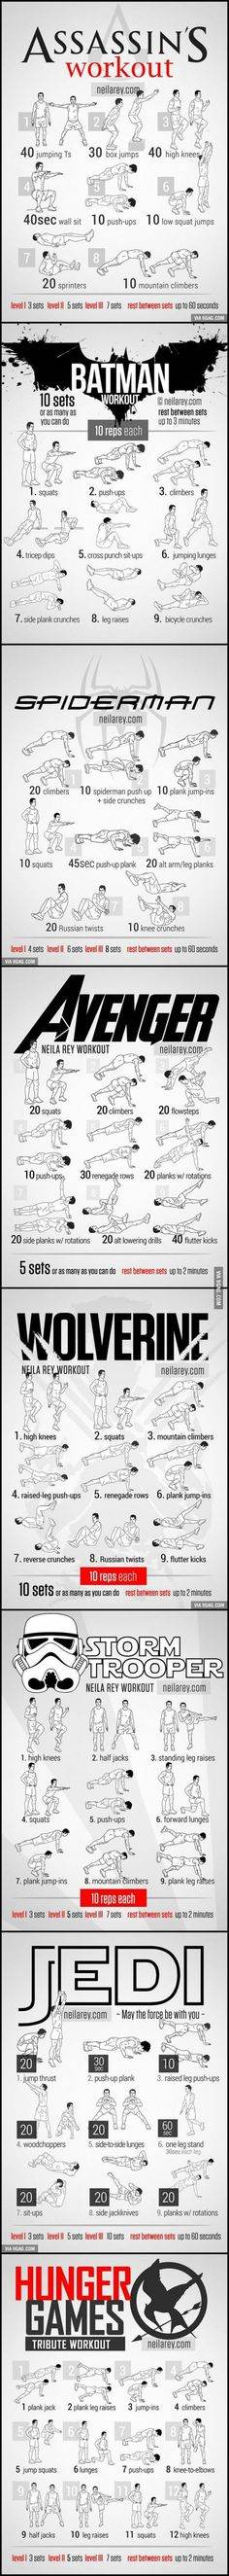 for Assassin, Batman, Spiderman, Avenger, Wolverine. Workout-for-Assassin-Batman-Spiderman-Avenger-WolvWorkout-for-Assassin-Batman-Spiderman-Avenger-Wolv Zumba Fitness, Fitness Workouts, At Home Workouts, Fitness Motivation, Health Fitness, Fitness Goals, Hero Workouts, Weight Workouts, Quick Workouts